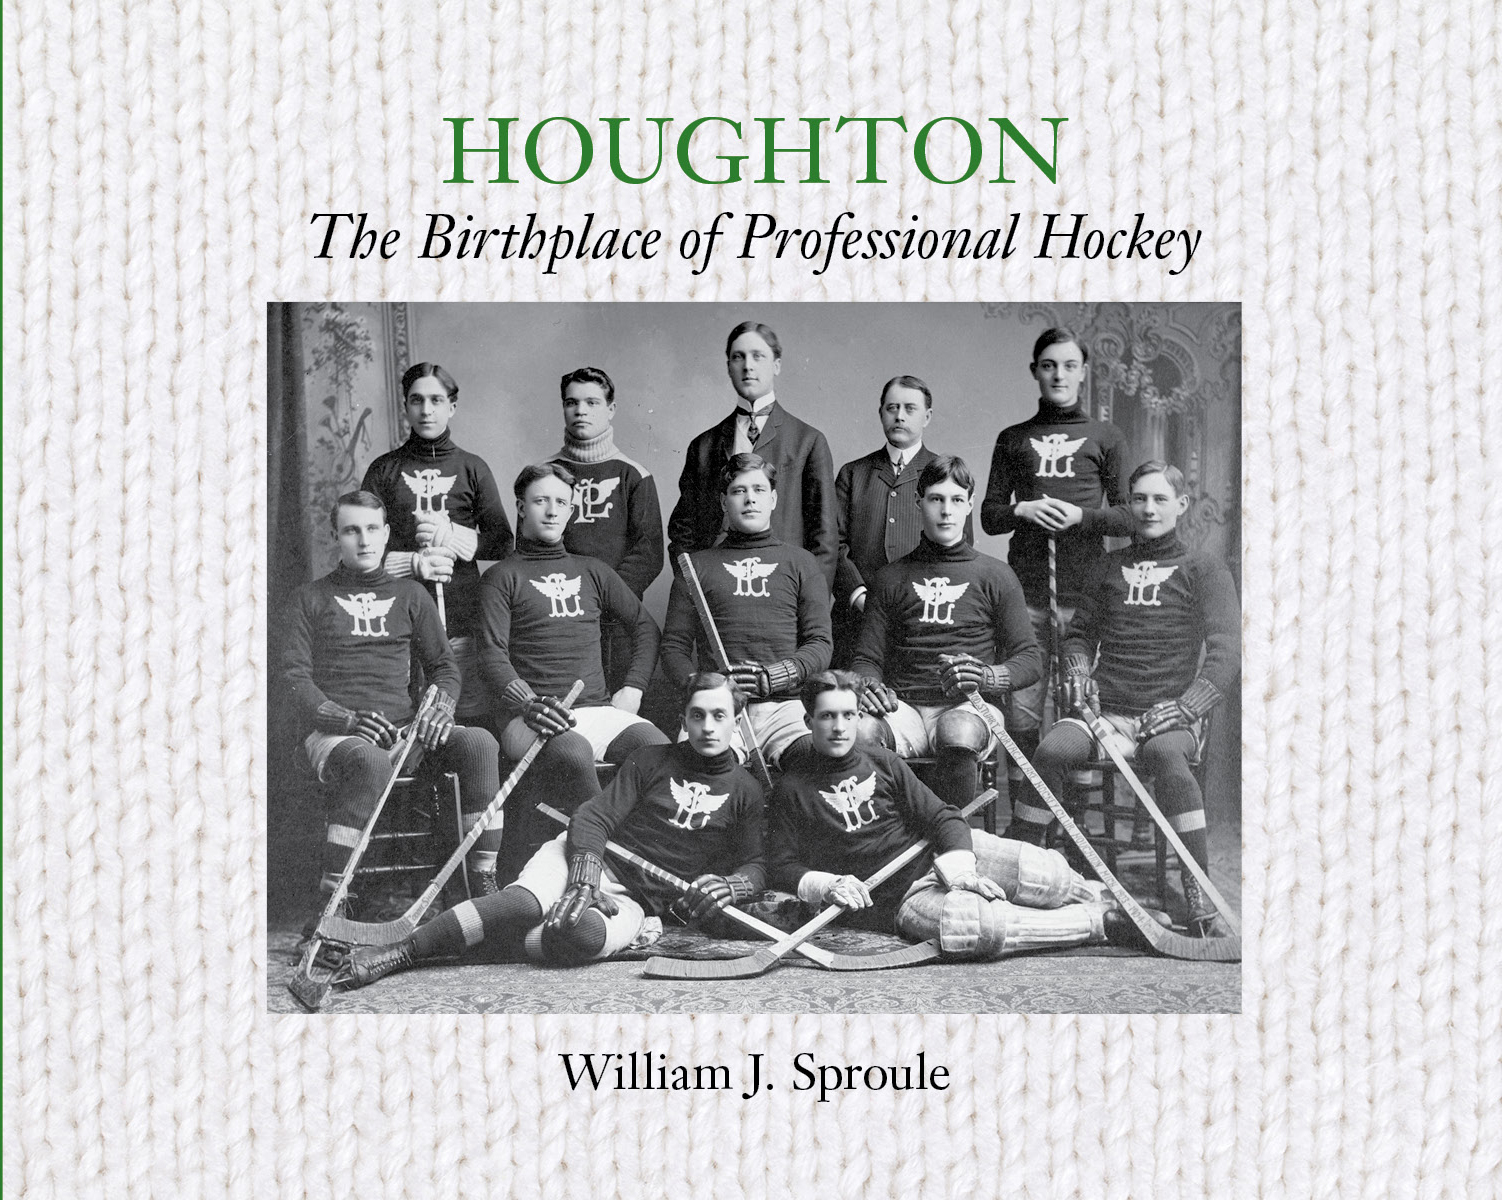 Houghton: The Birthplace of Professional Hockey Image